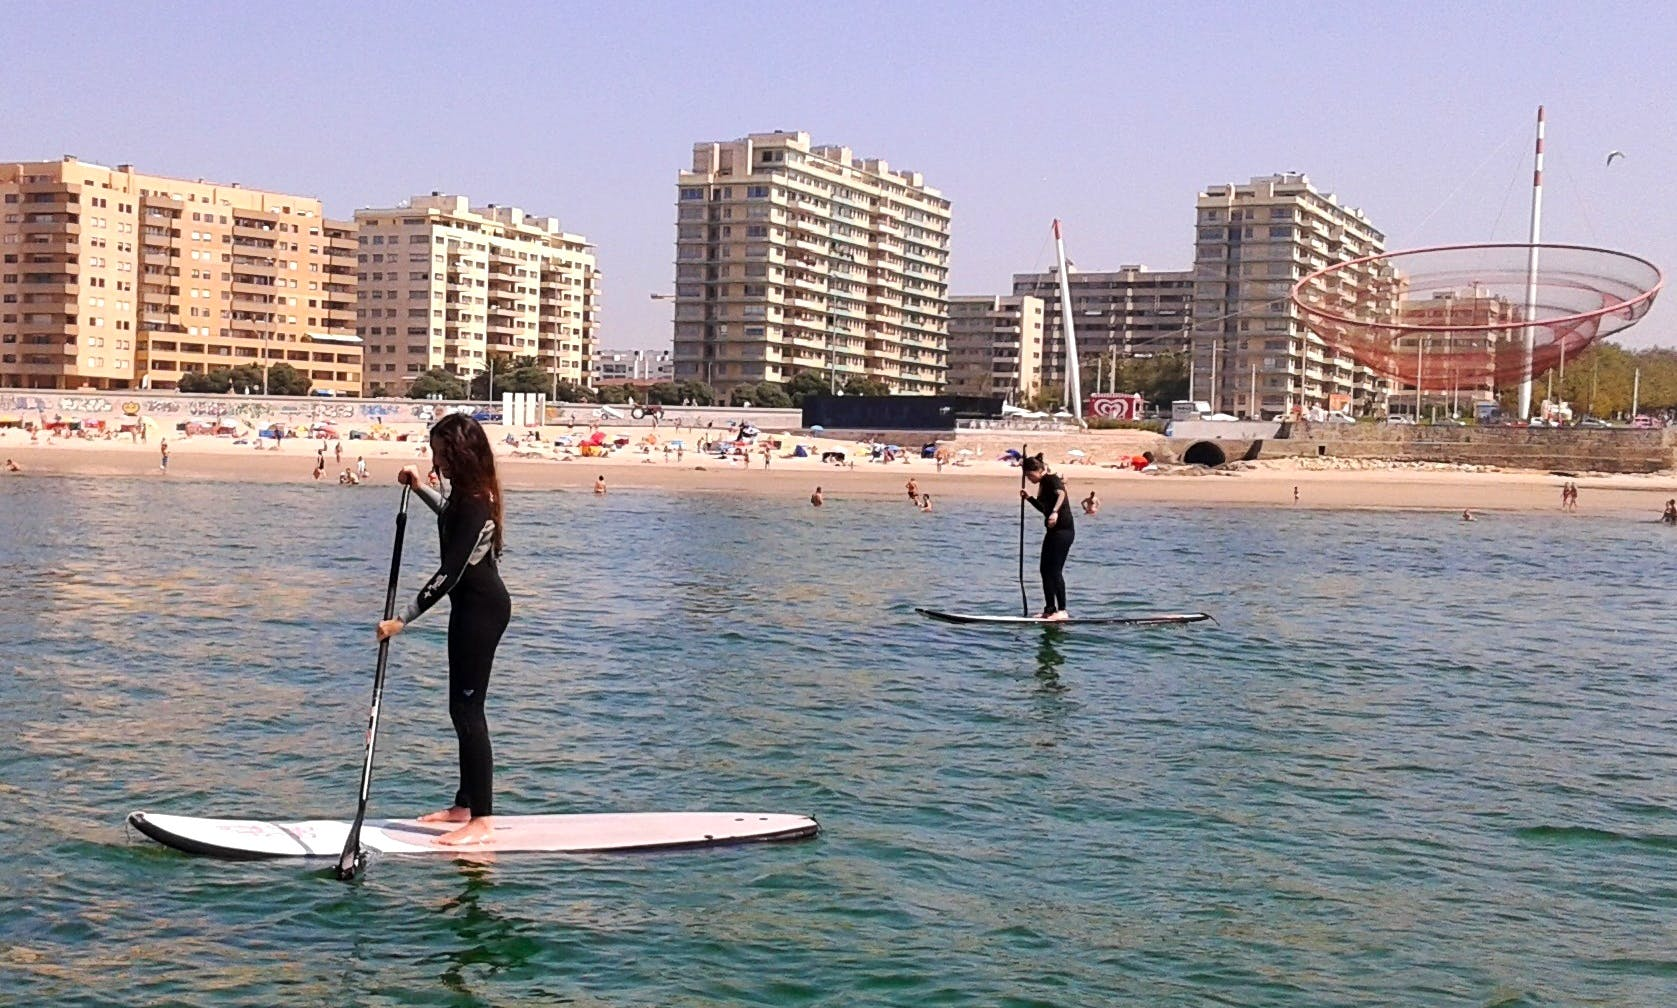 Paddleboard Lesson In Matosinhos, Portugal